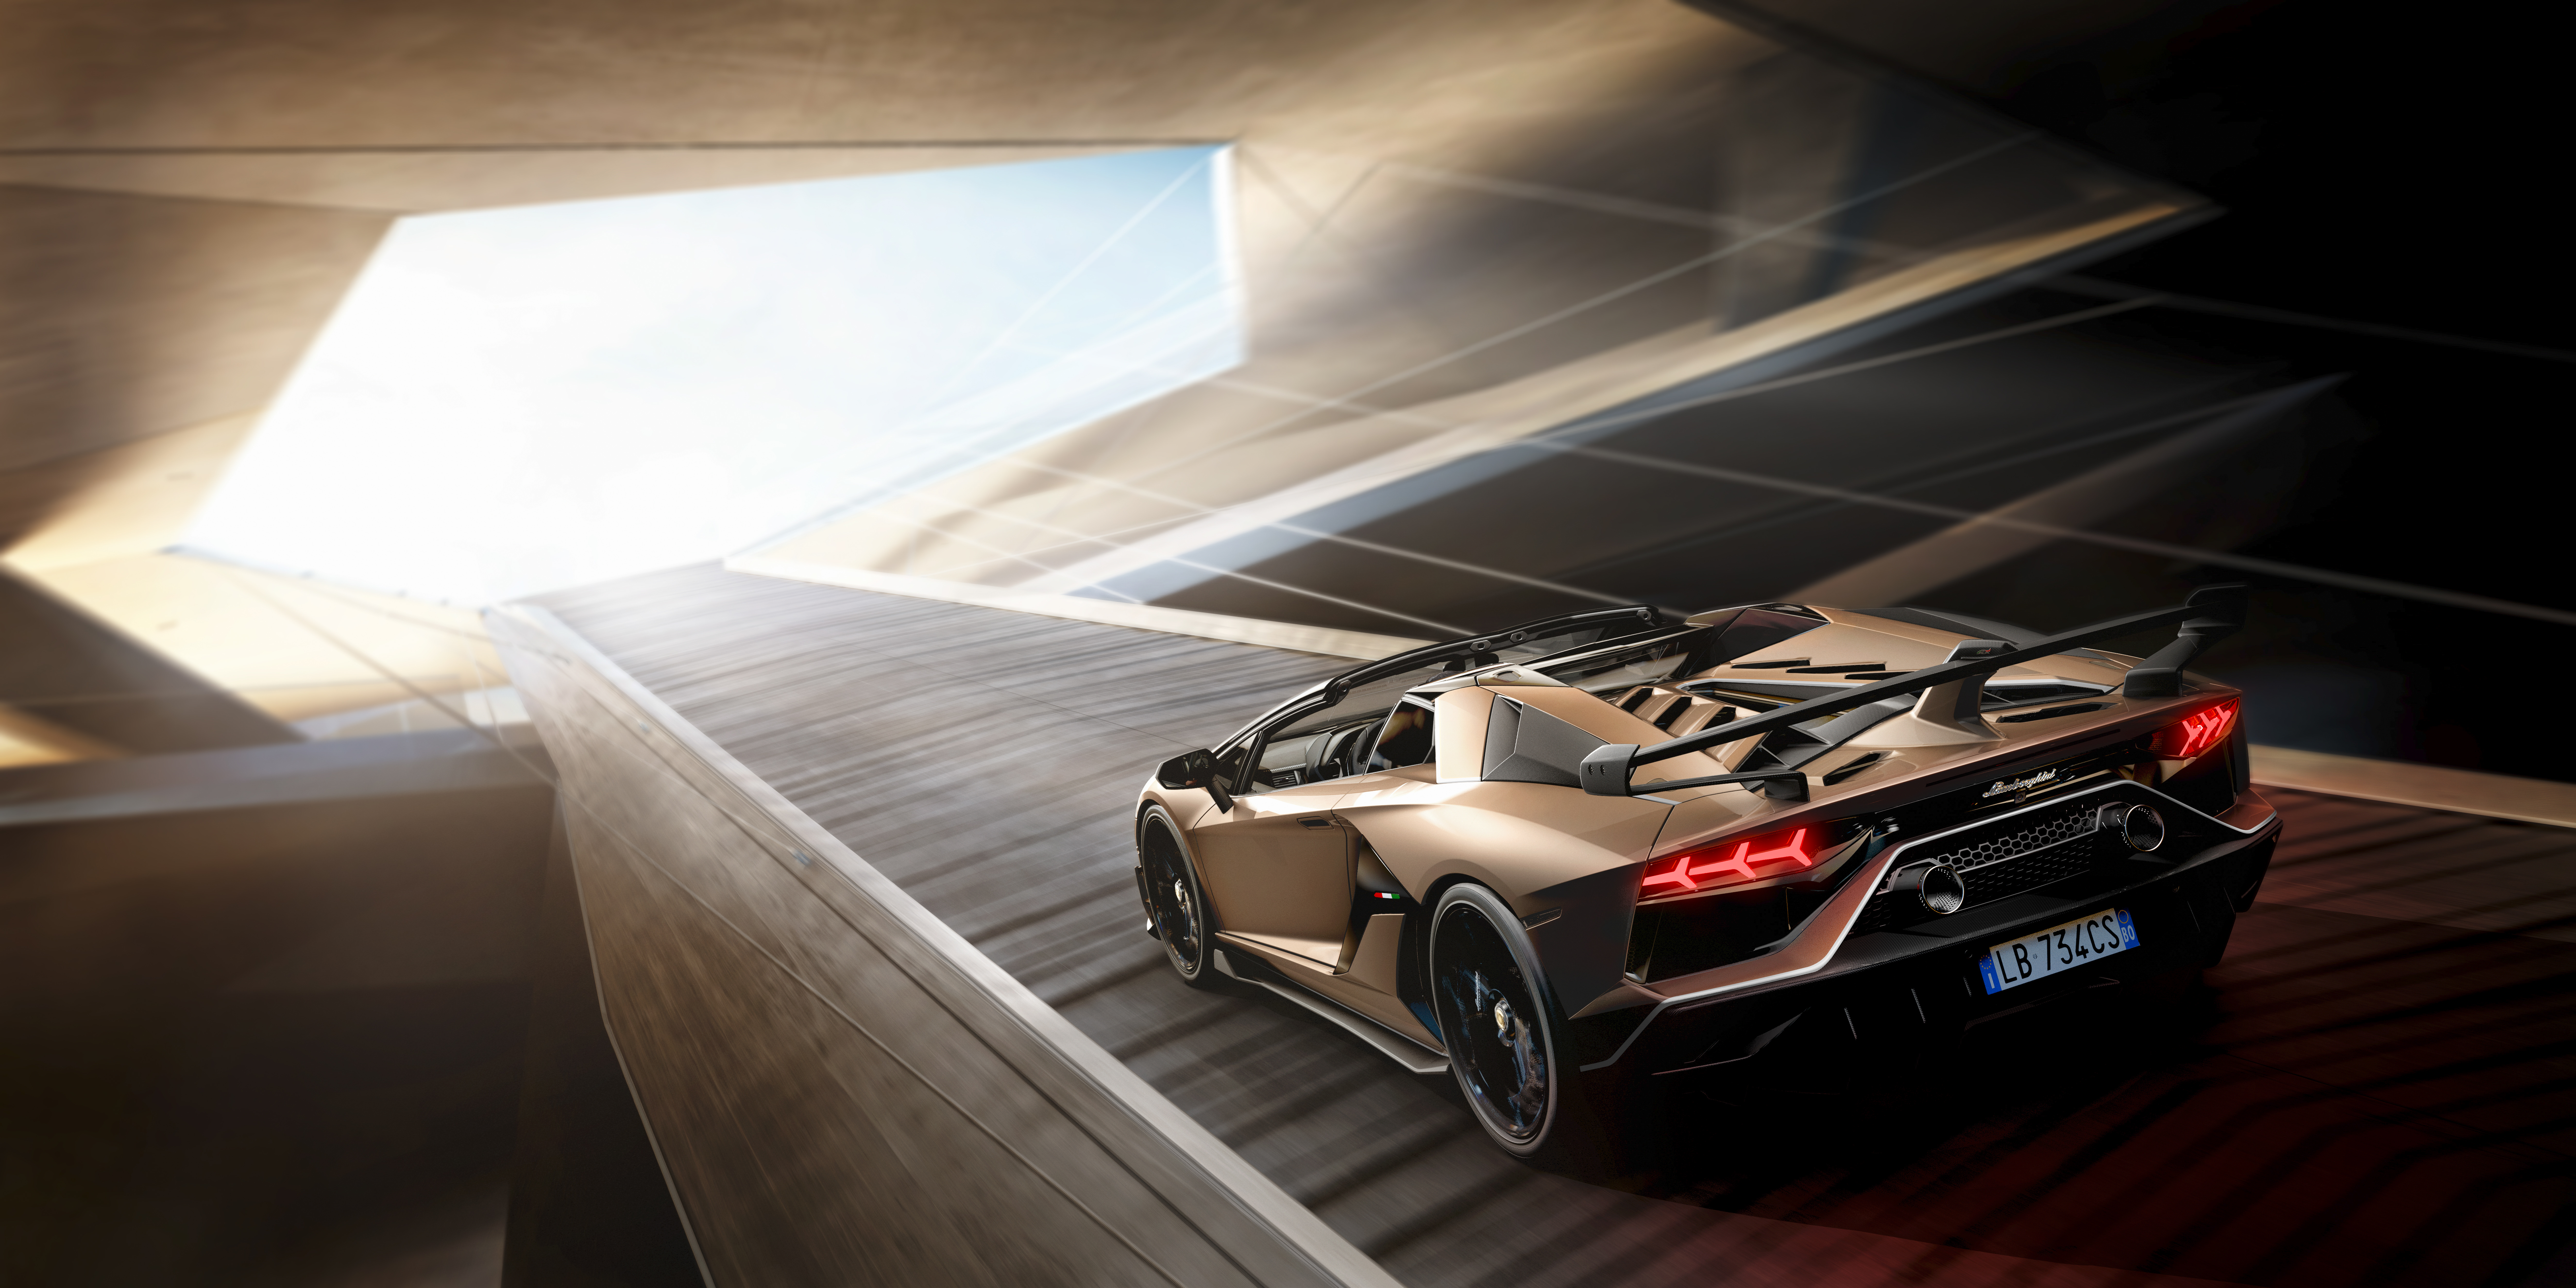 Automobili Lamborghini Launches The Aventador Svj Roadster At Geneva